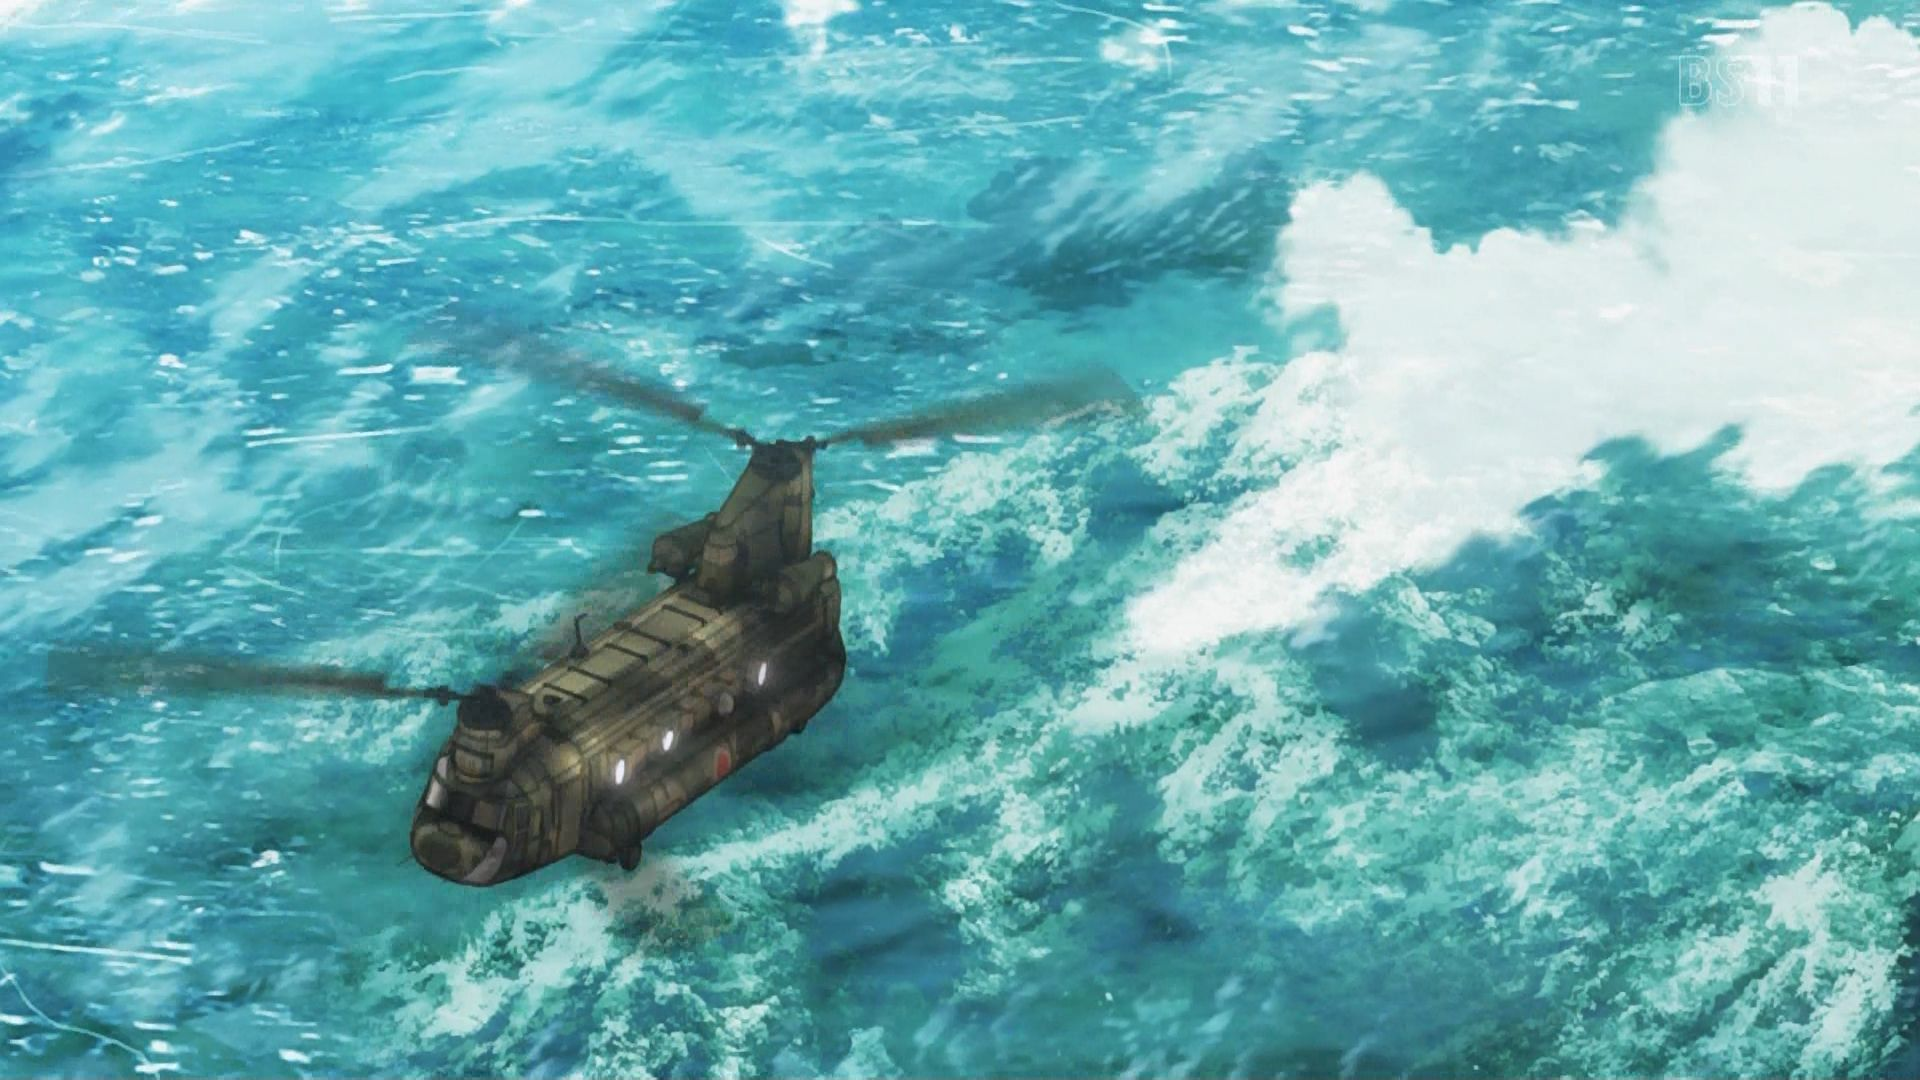 Helicopter Full Hd Wallpaper Boeing Ch 47 Chinook Full Hd Wallpaper And Background